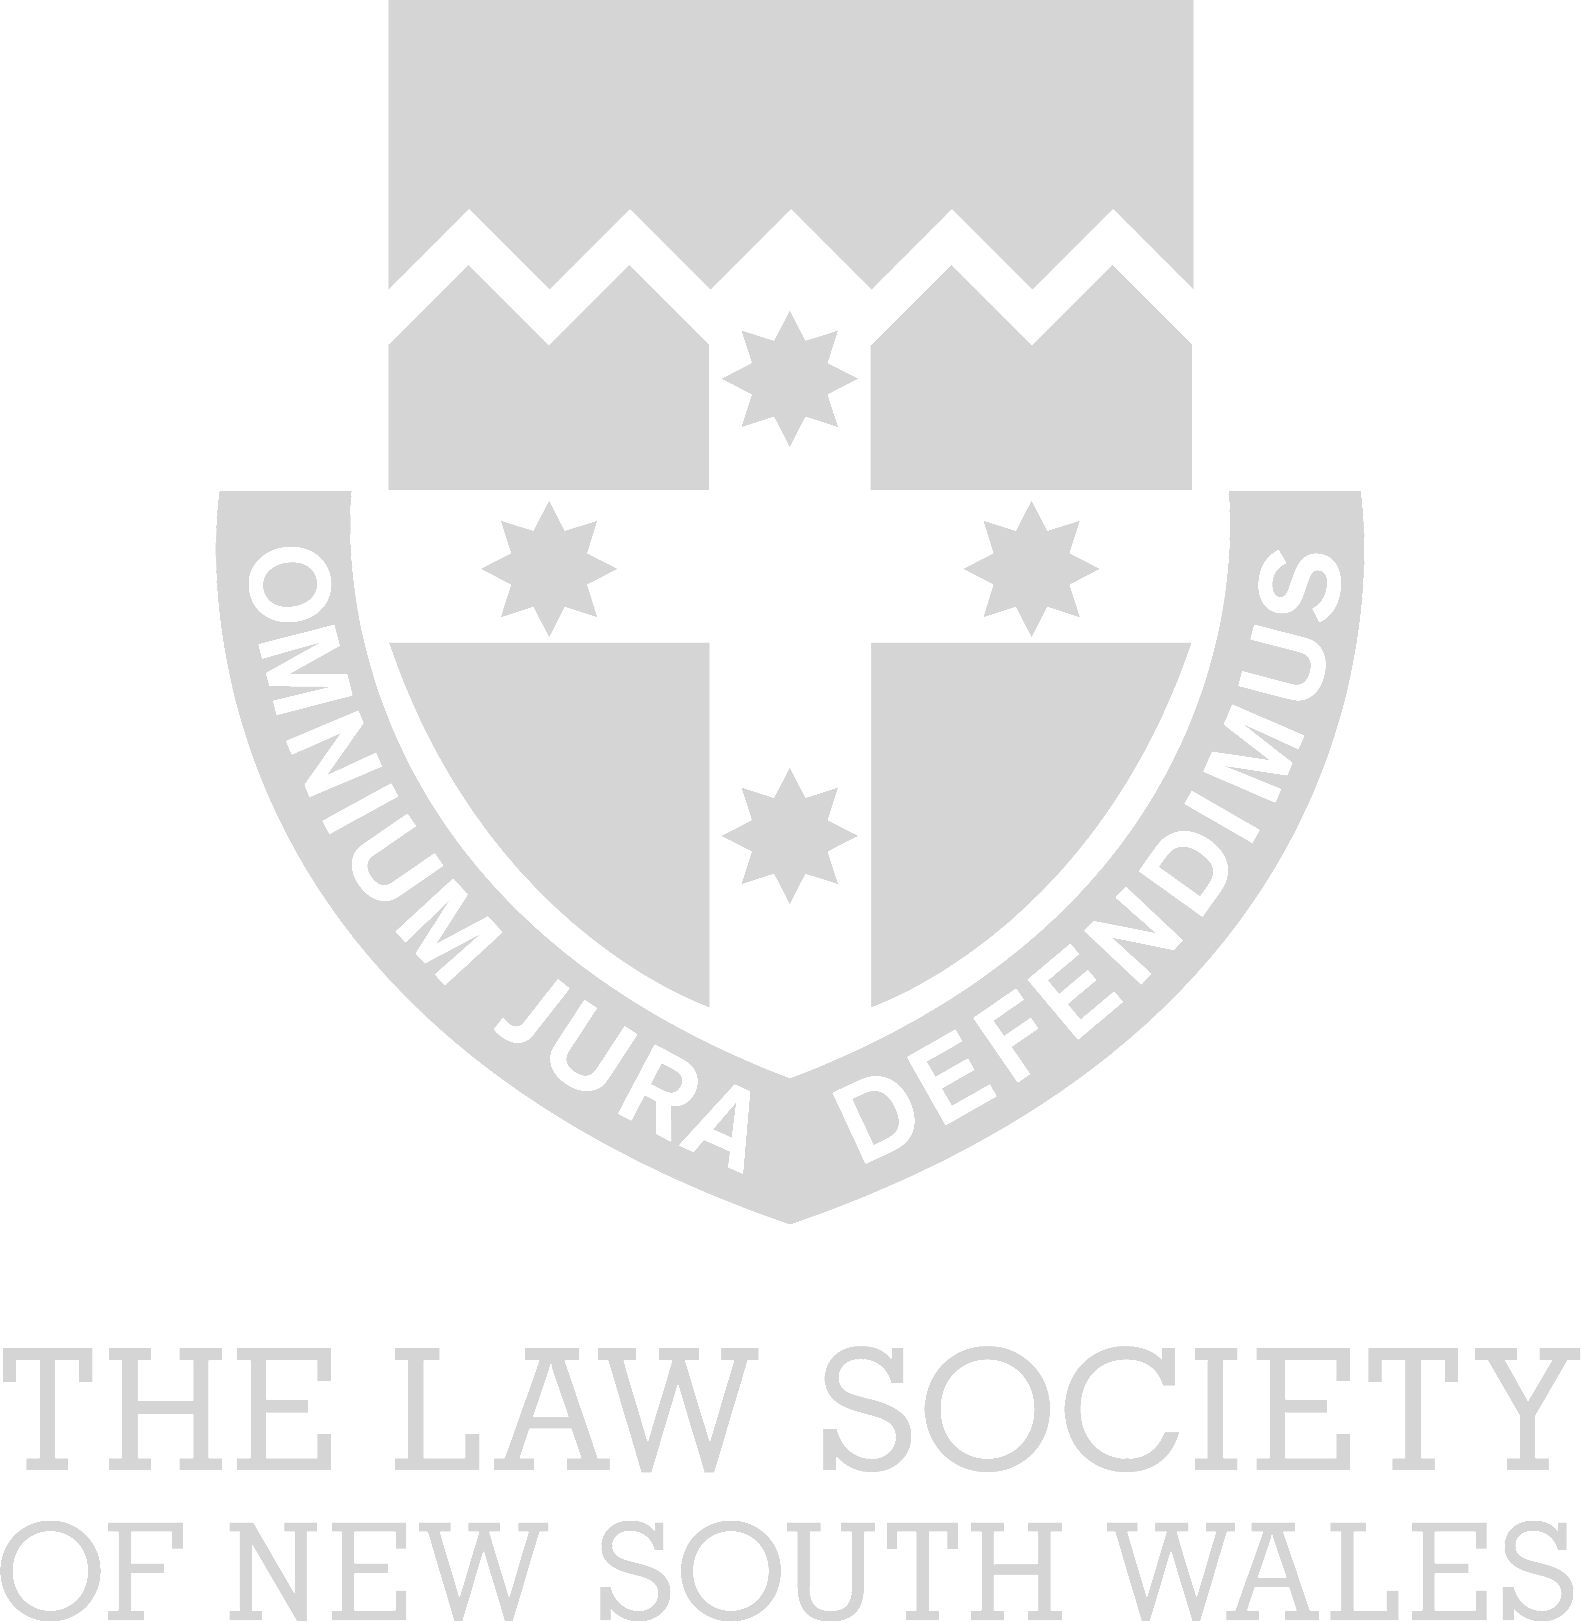 What you do as a Director of the Law Society